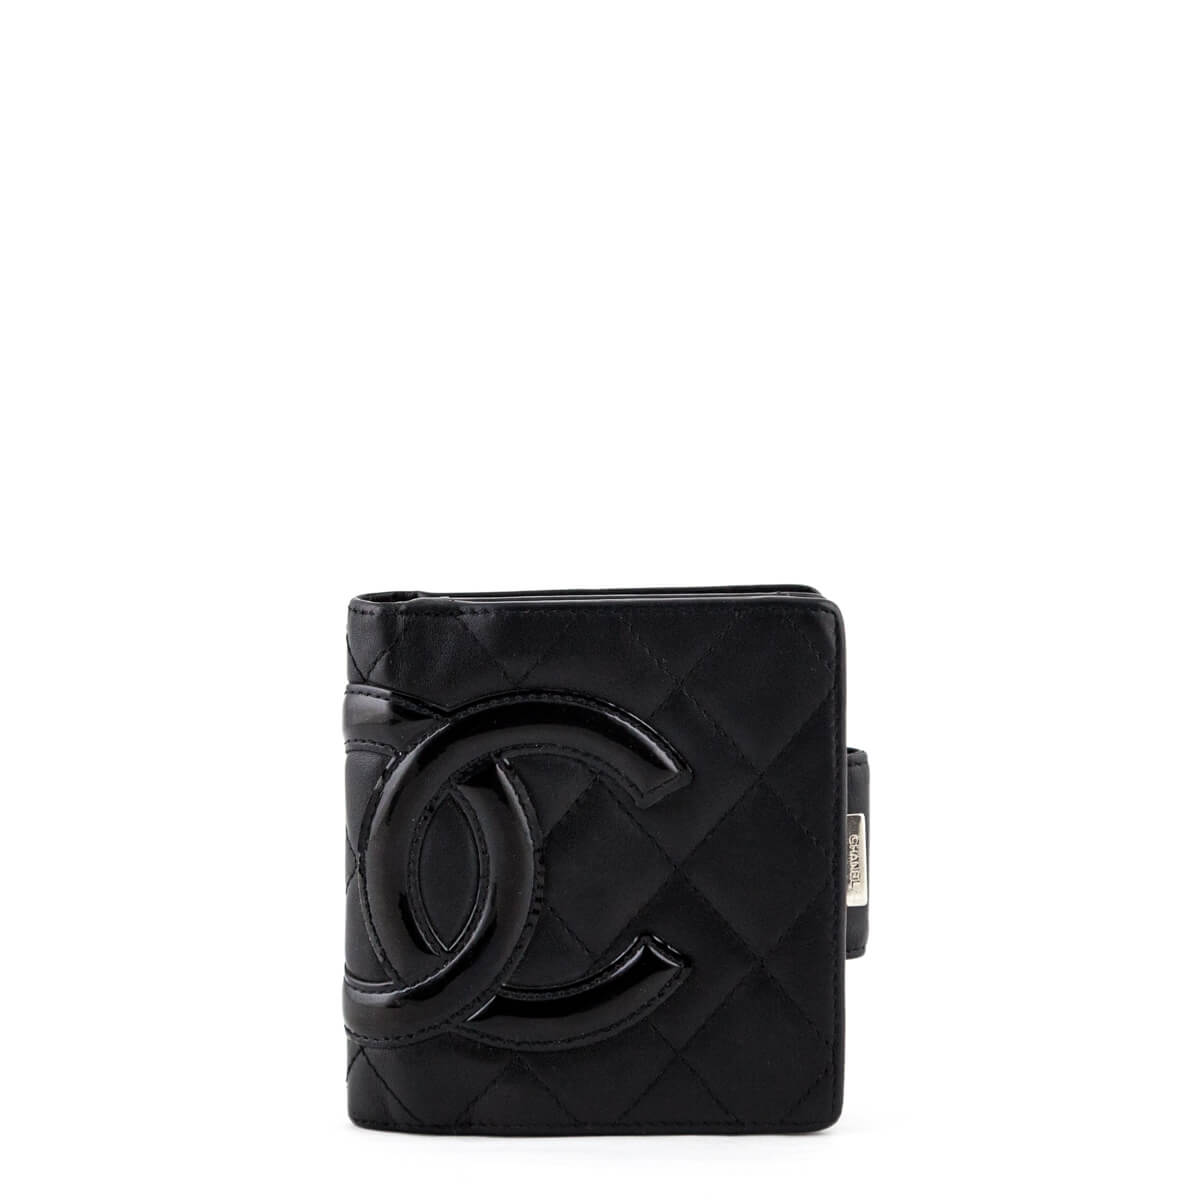 63cdadadf6c5 Chanel Black Quilted Lambskin Ligne Cambon Compact Wallet - LOVE that BAG -  Preowned Authentic Designer ...